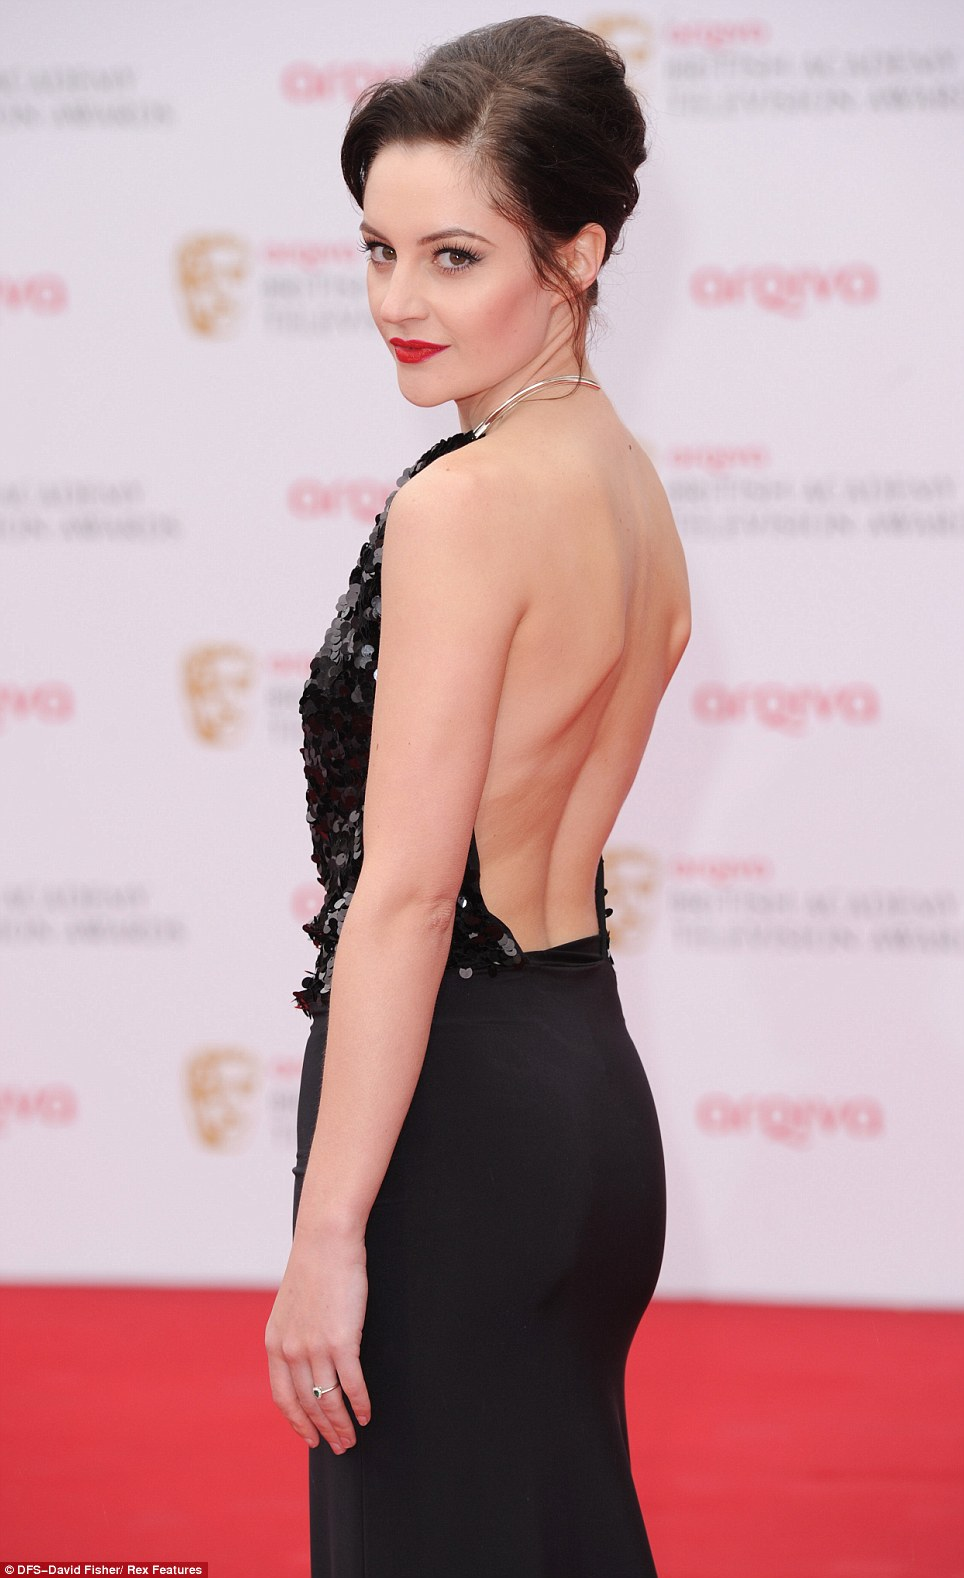 Backless wonder: Corrie actress Paula Lane drew attention with her elegant black dress